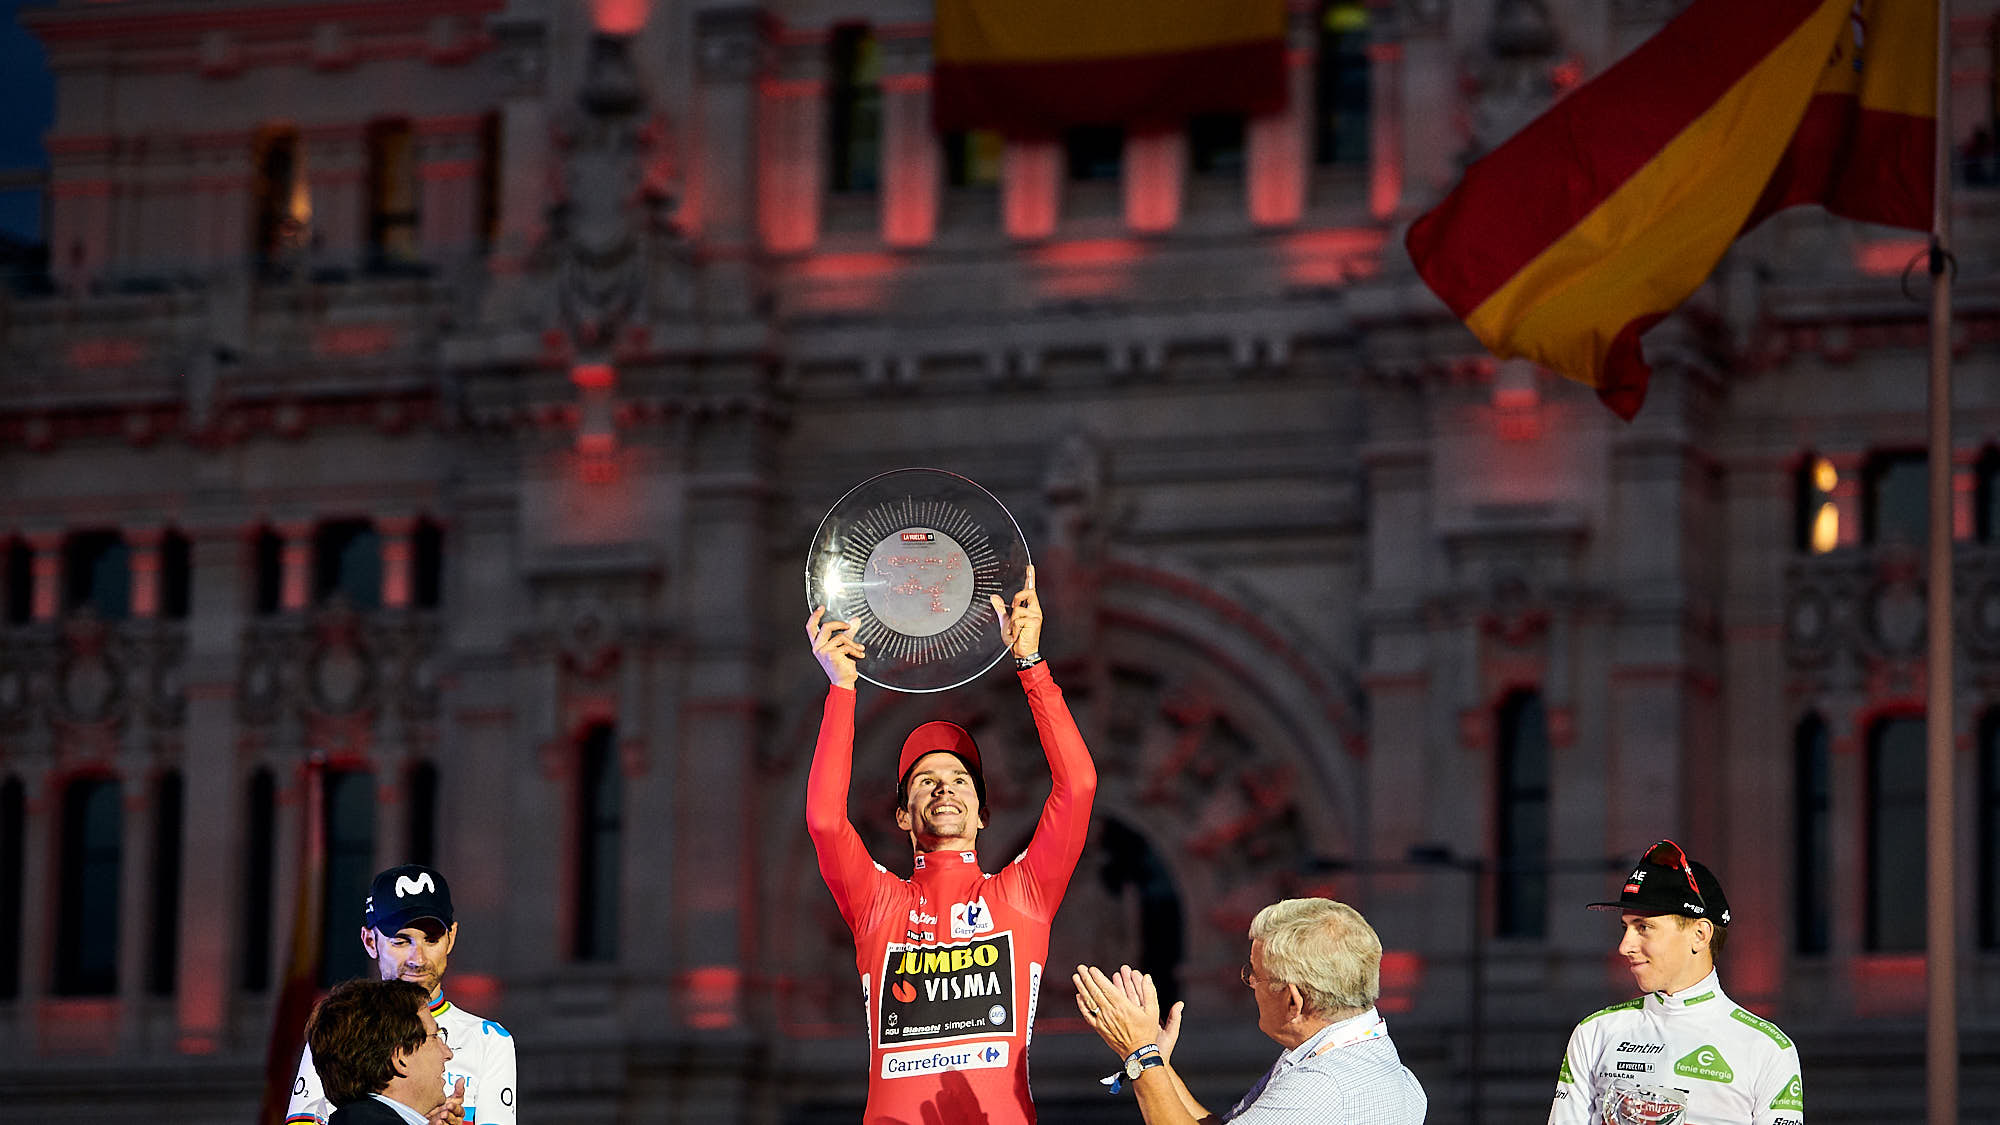 Cyclist Primoz Roglic (Jumbo-Visma) raising the Vuelta trophy in Madrid